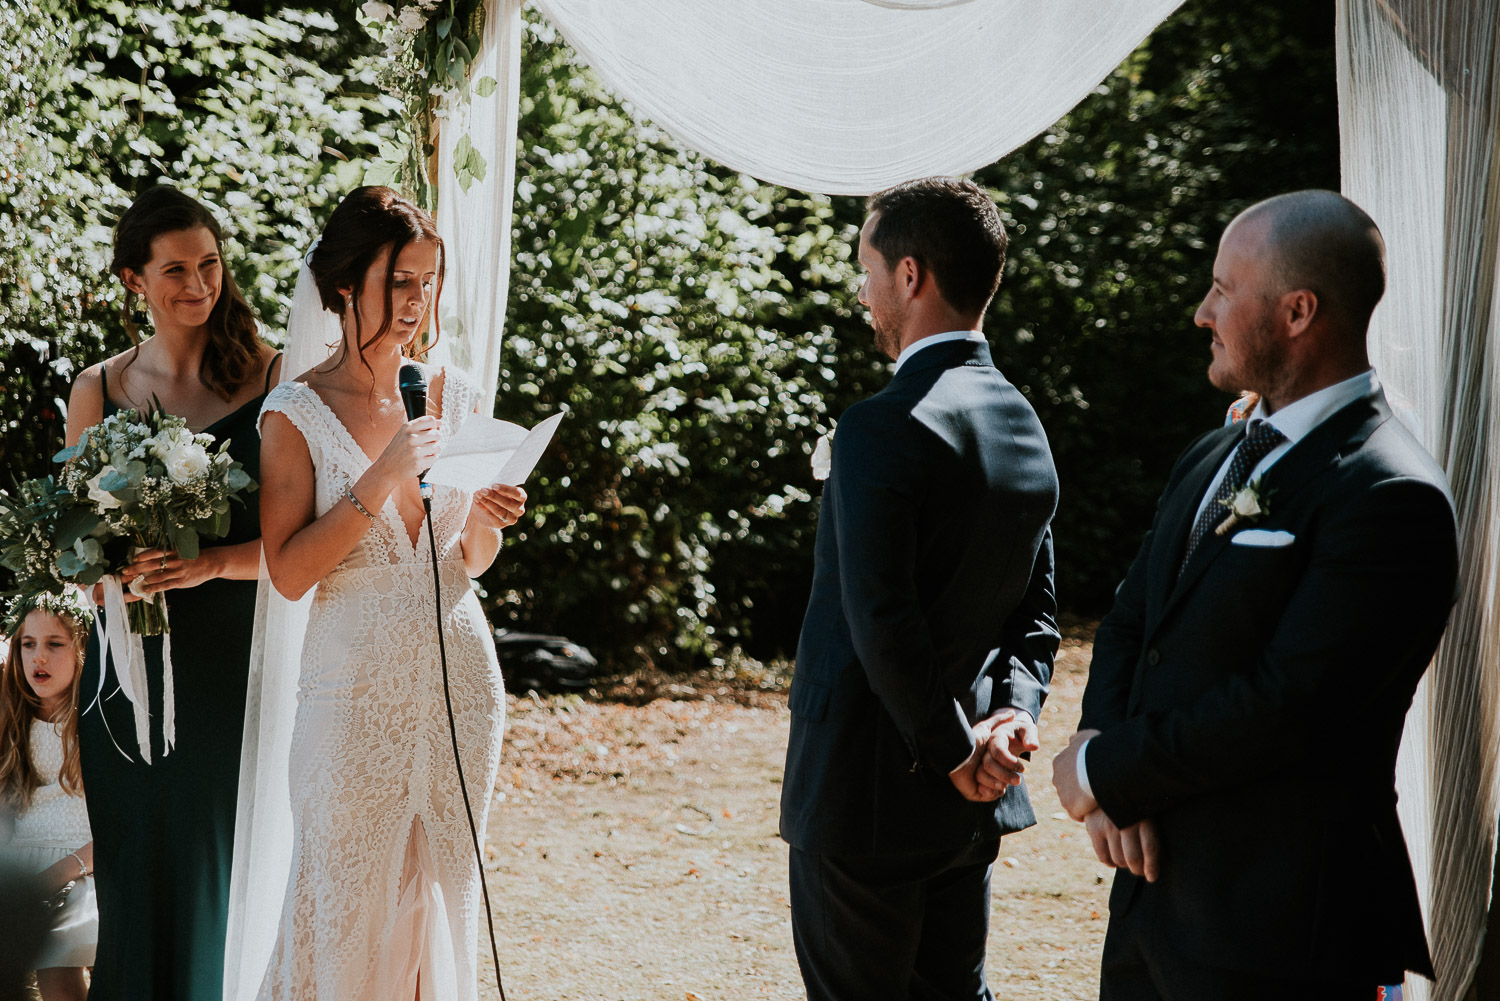 bergerac_wedding_katy_webb_photography_france_UK93